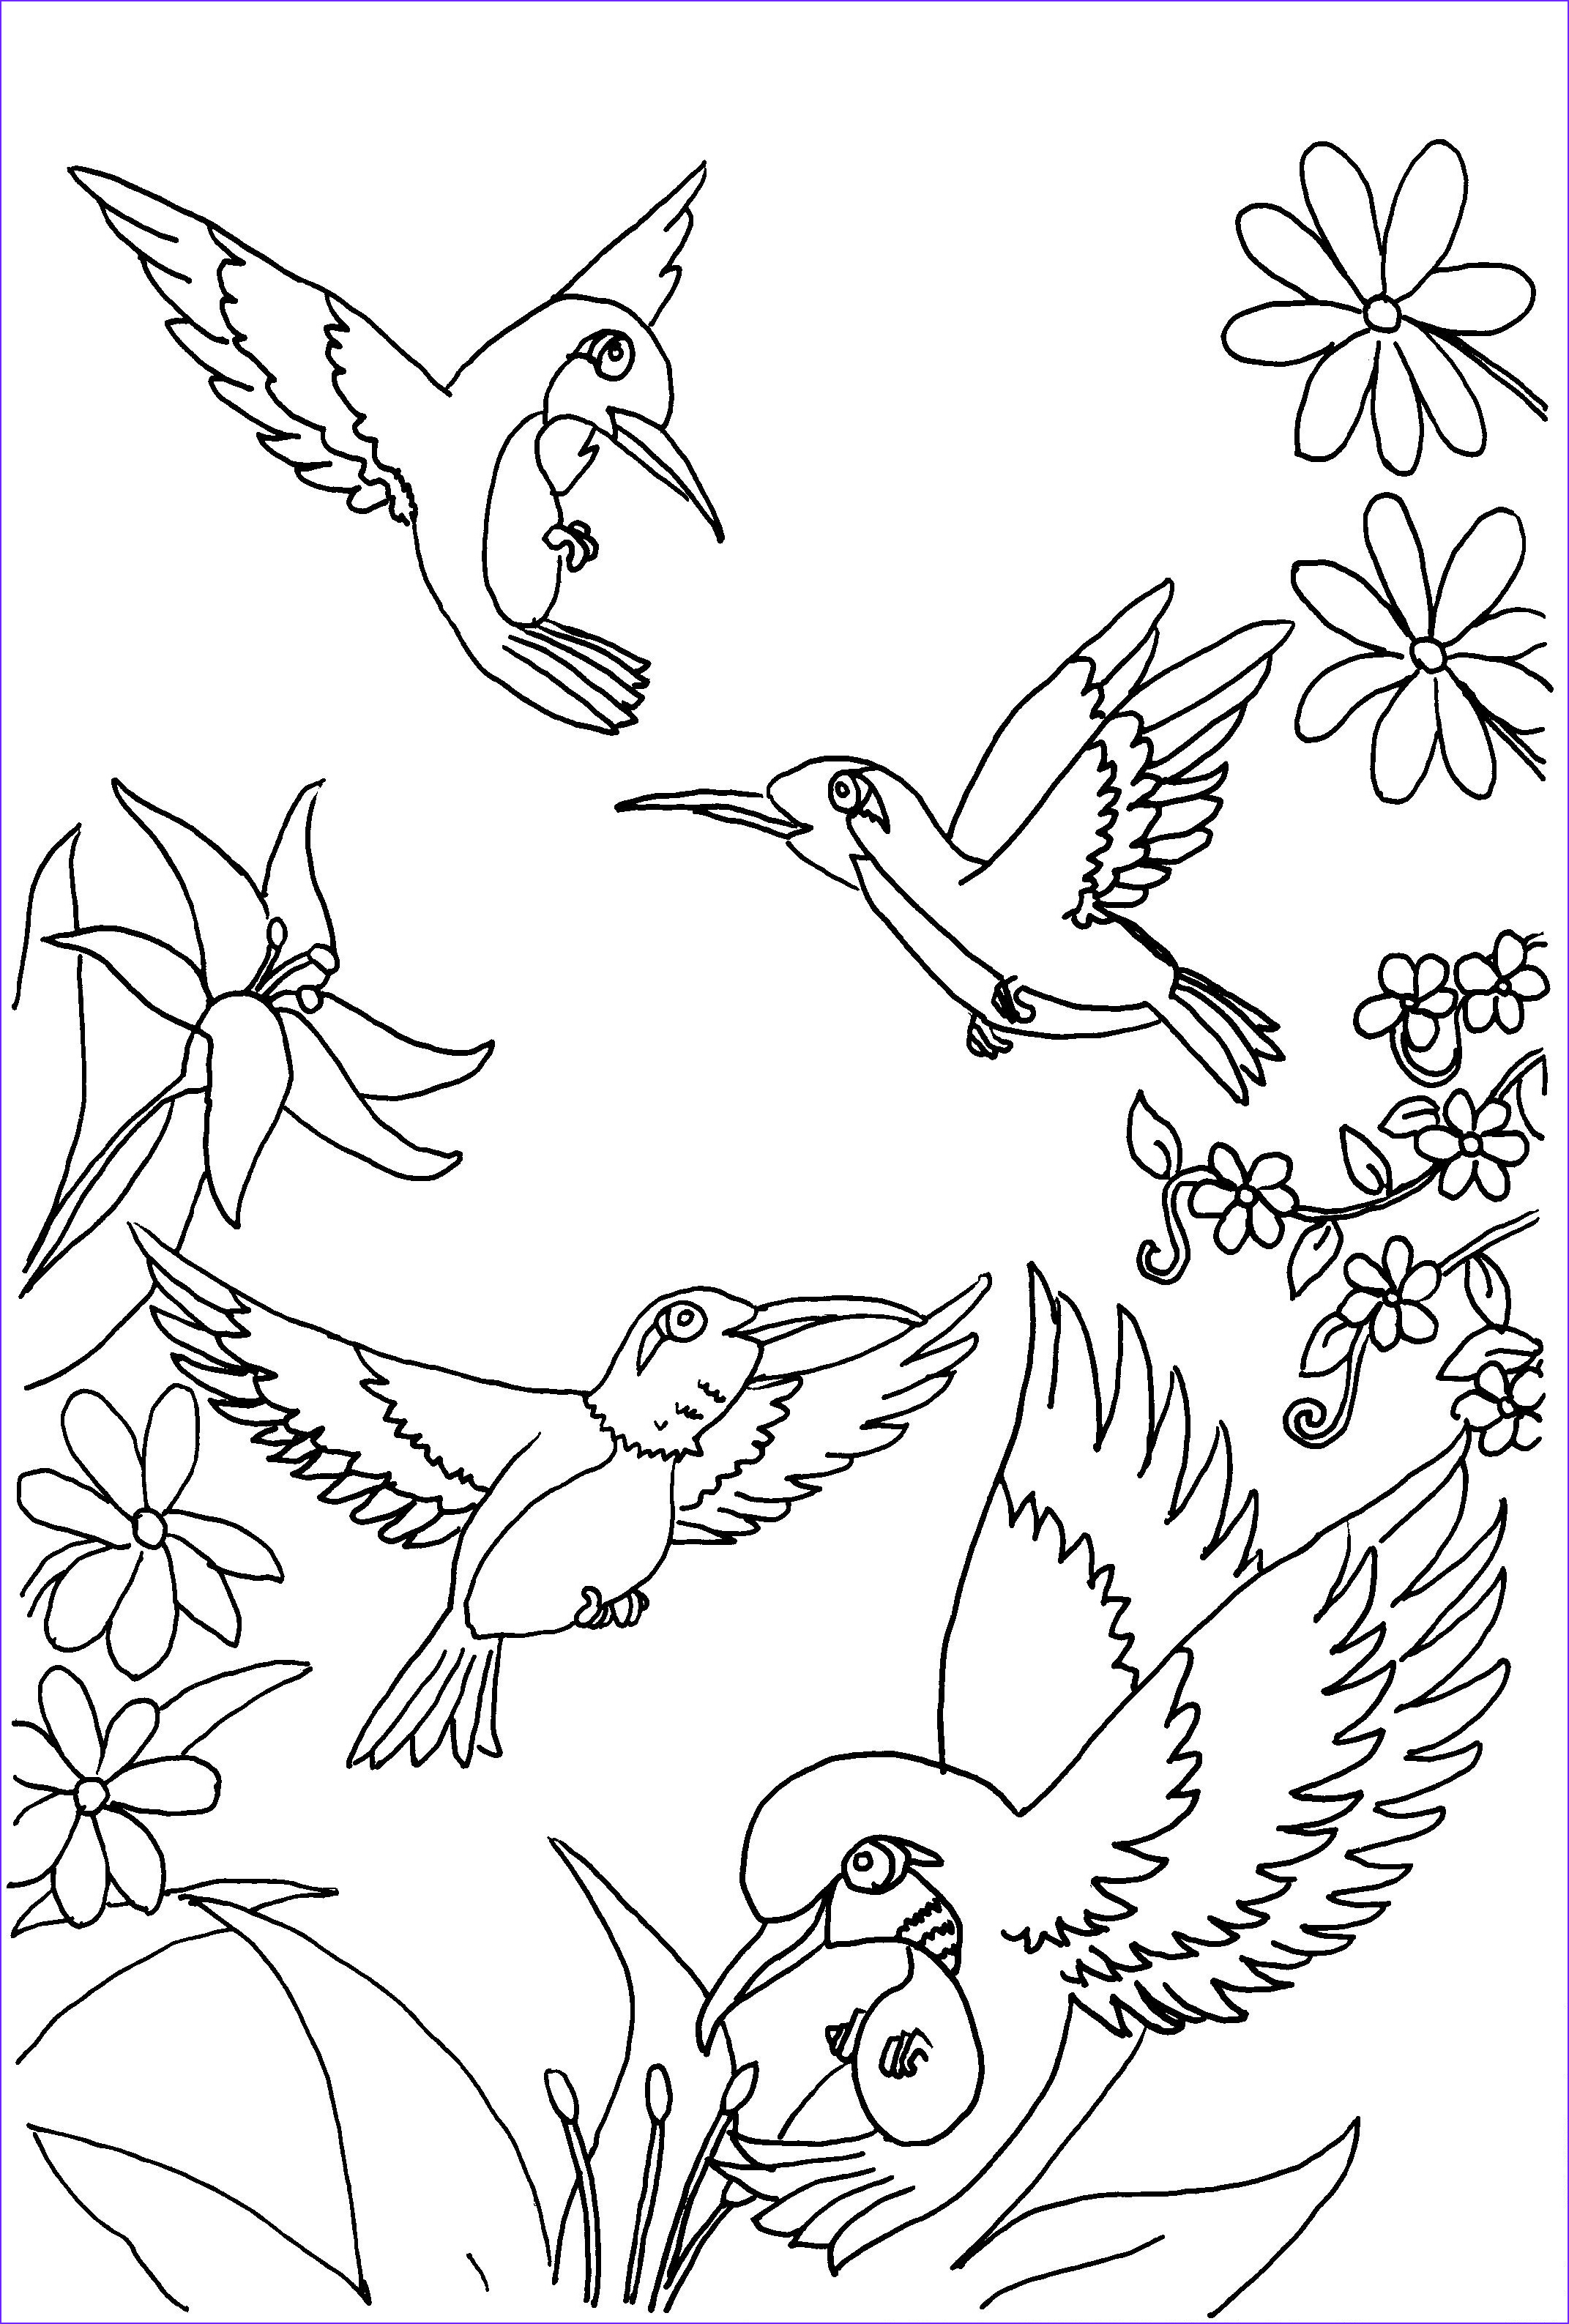 14 Beautiful Coloring Pages for Kids Free Photos | Coloring ...